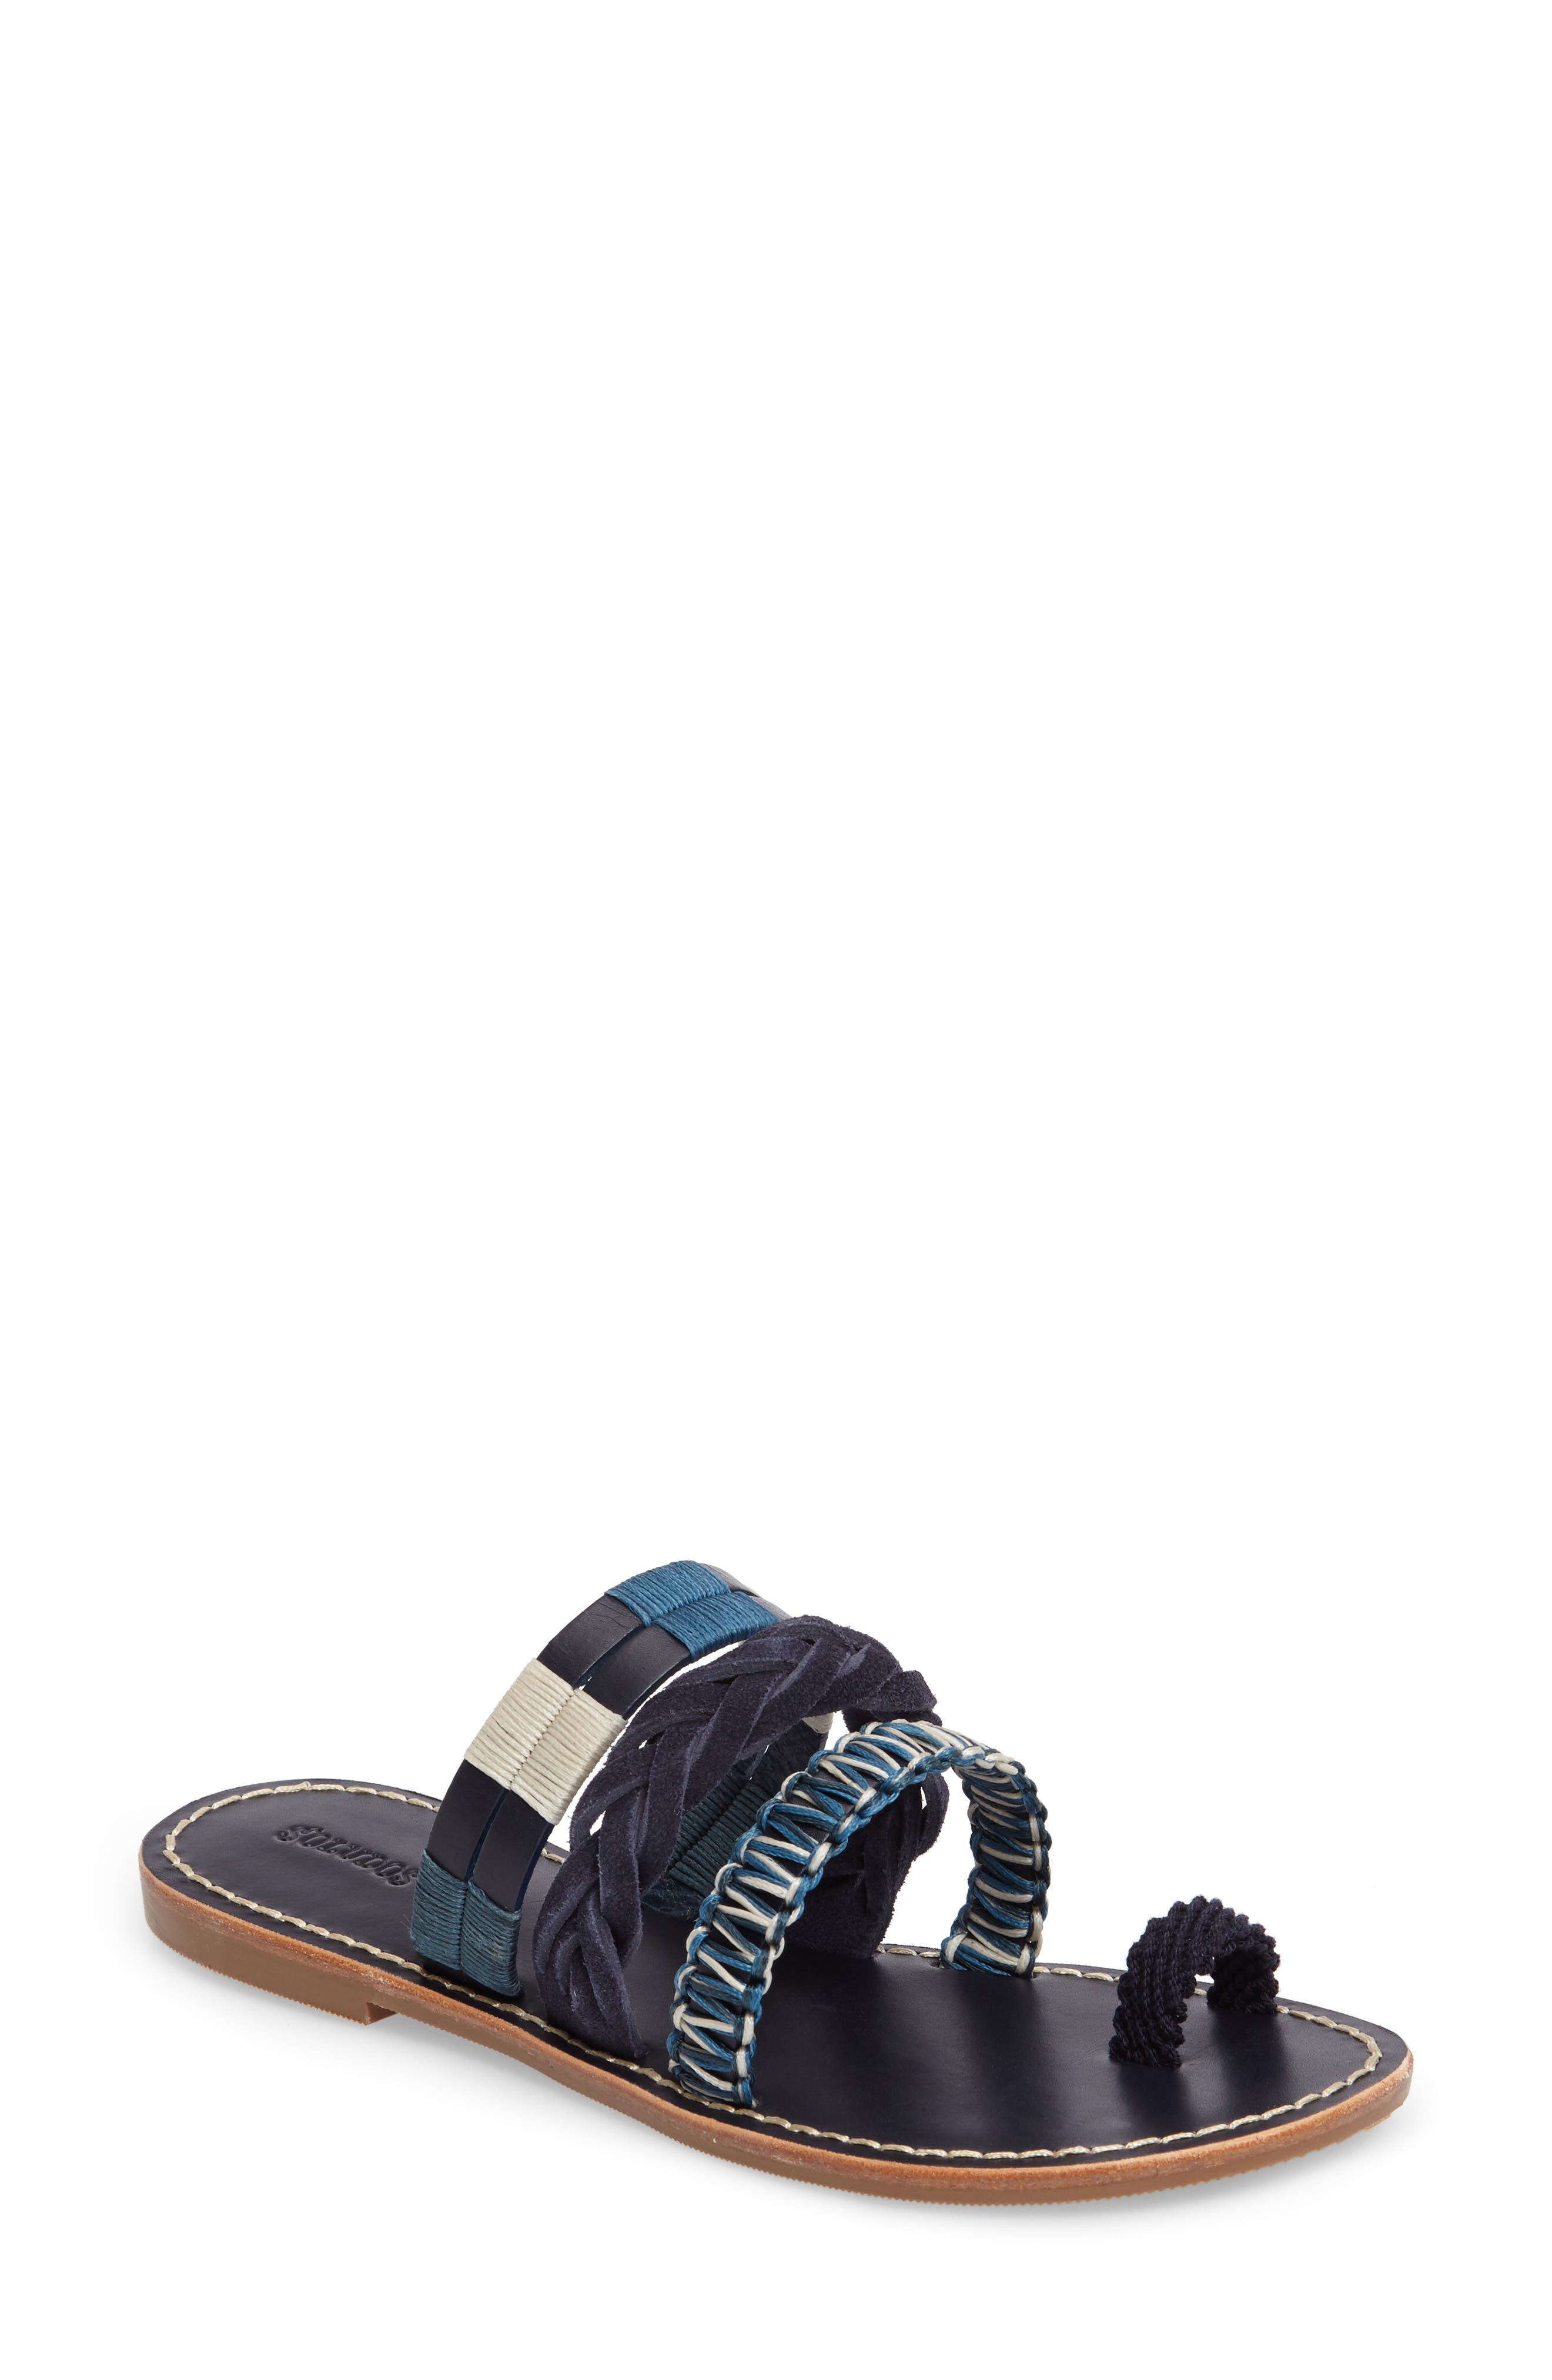 Slide Sandal,                         Main,                         color, 466